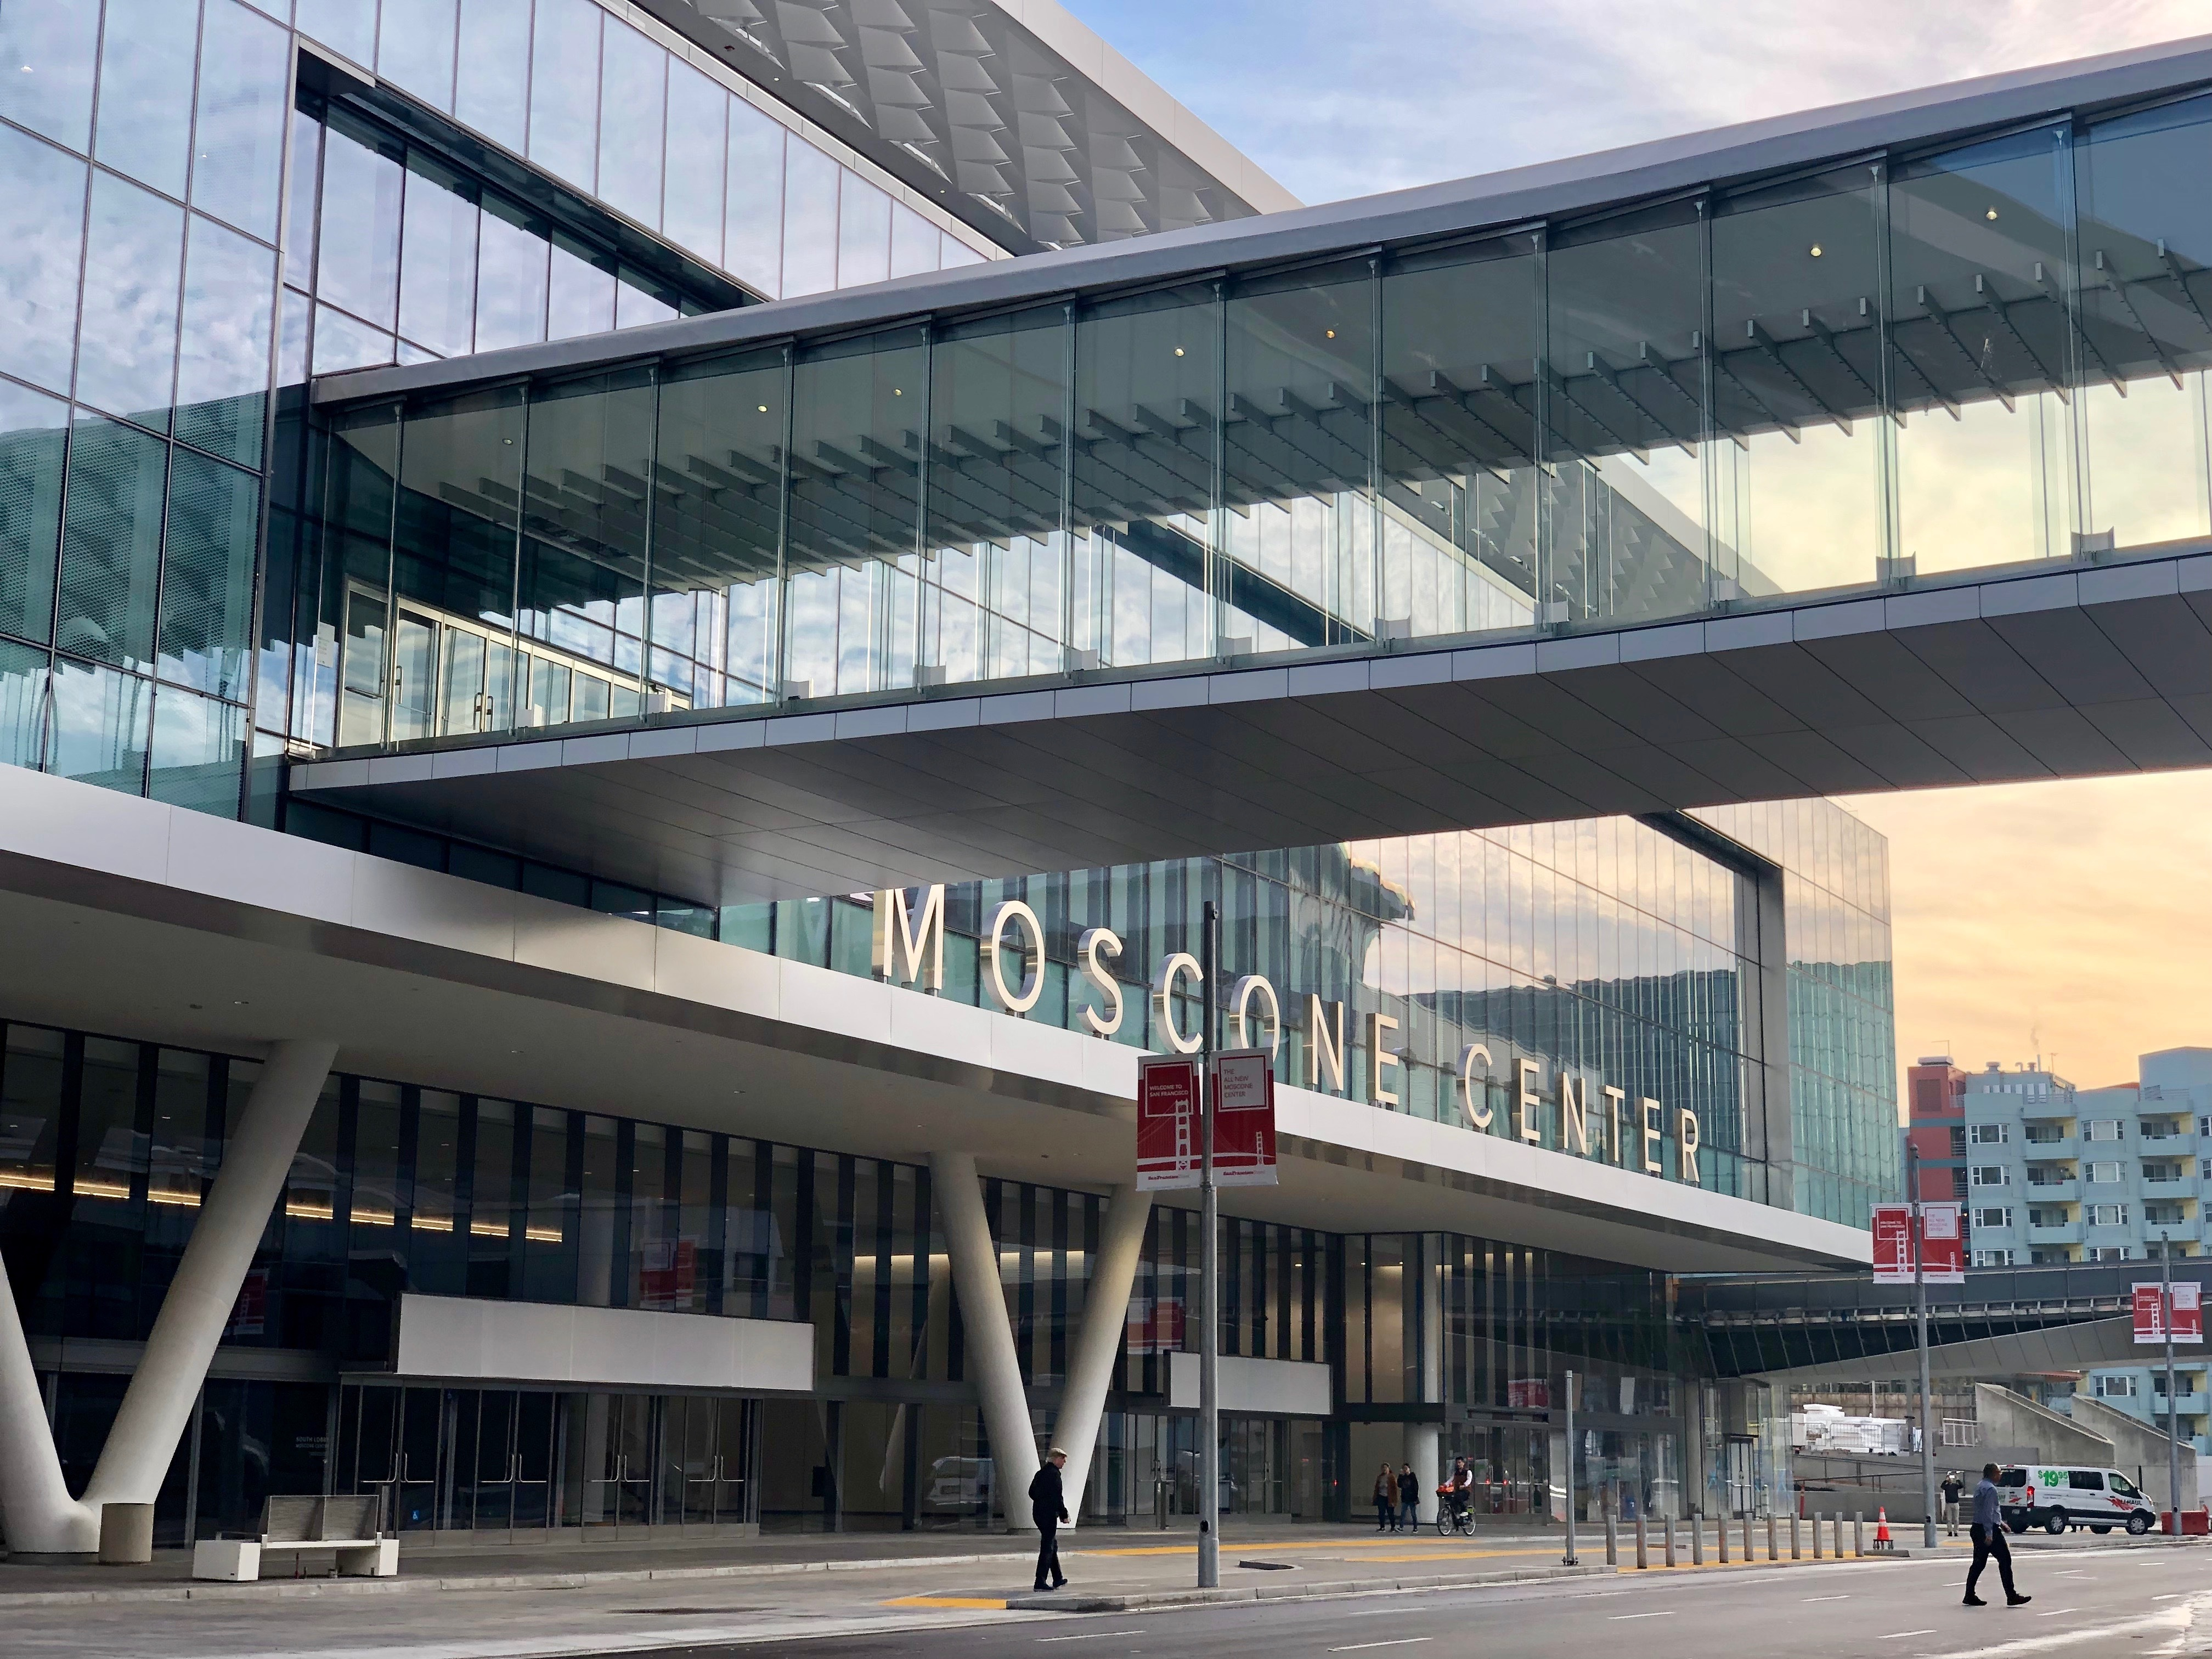 Oracle convention pulls out of SF over 'street conditions'